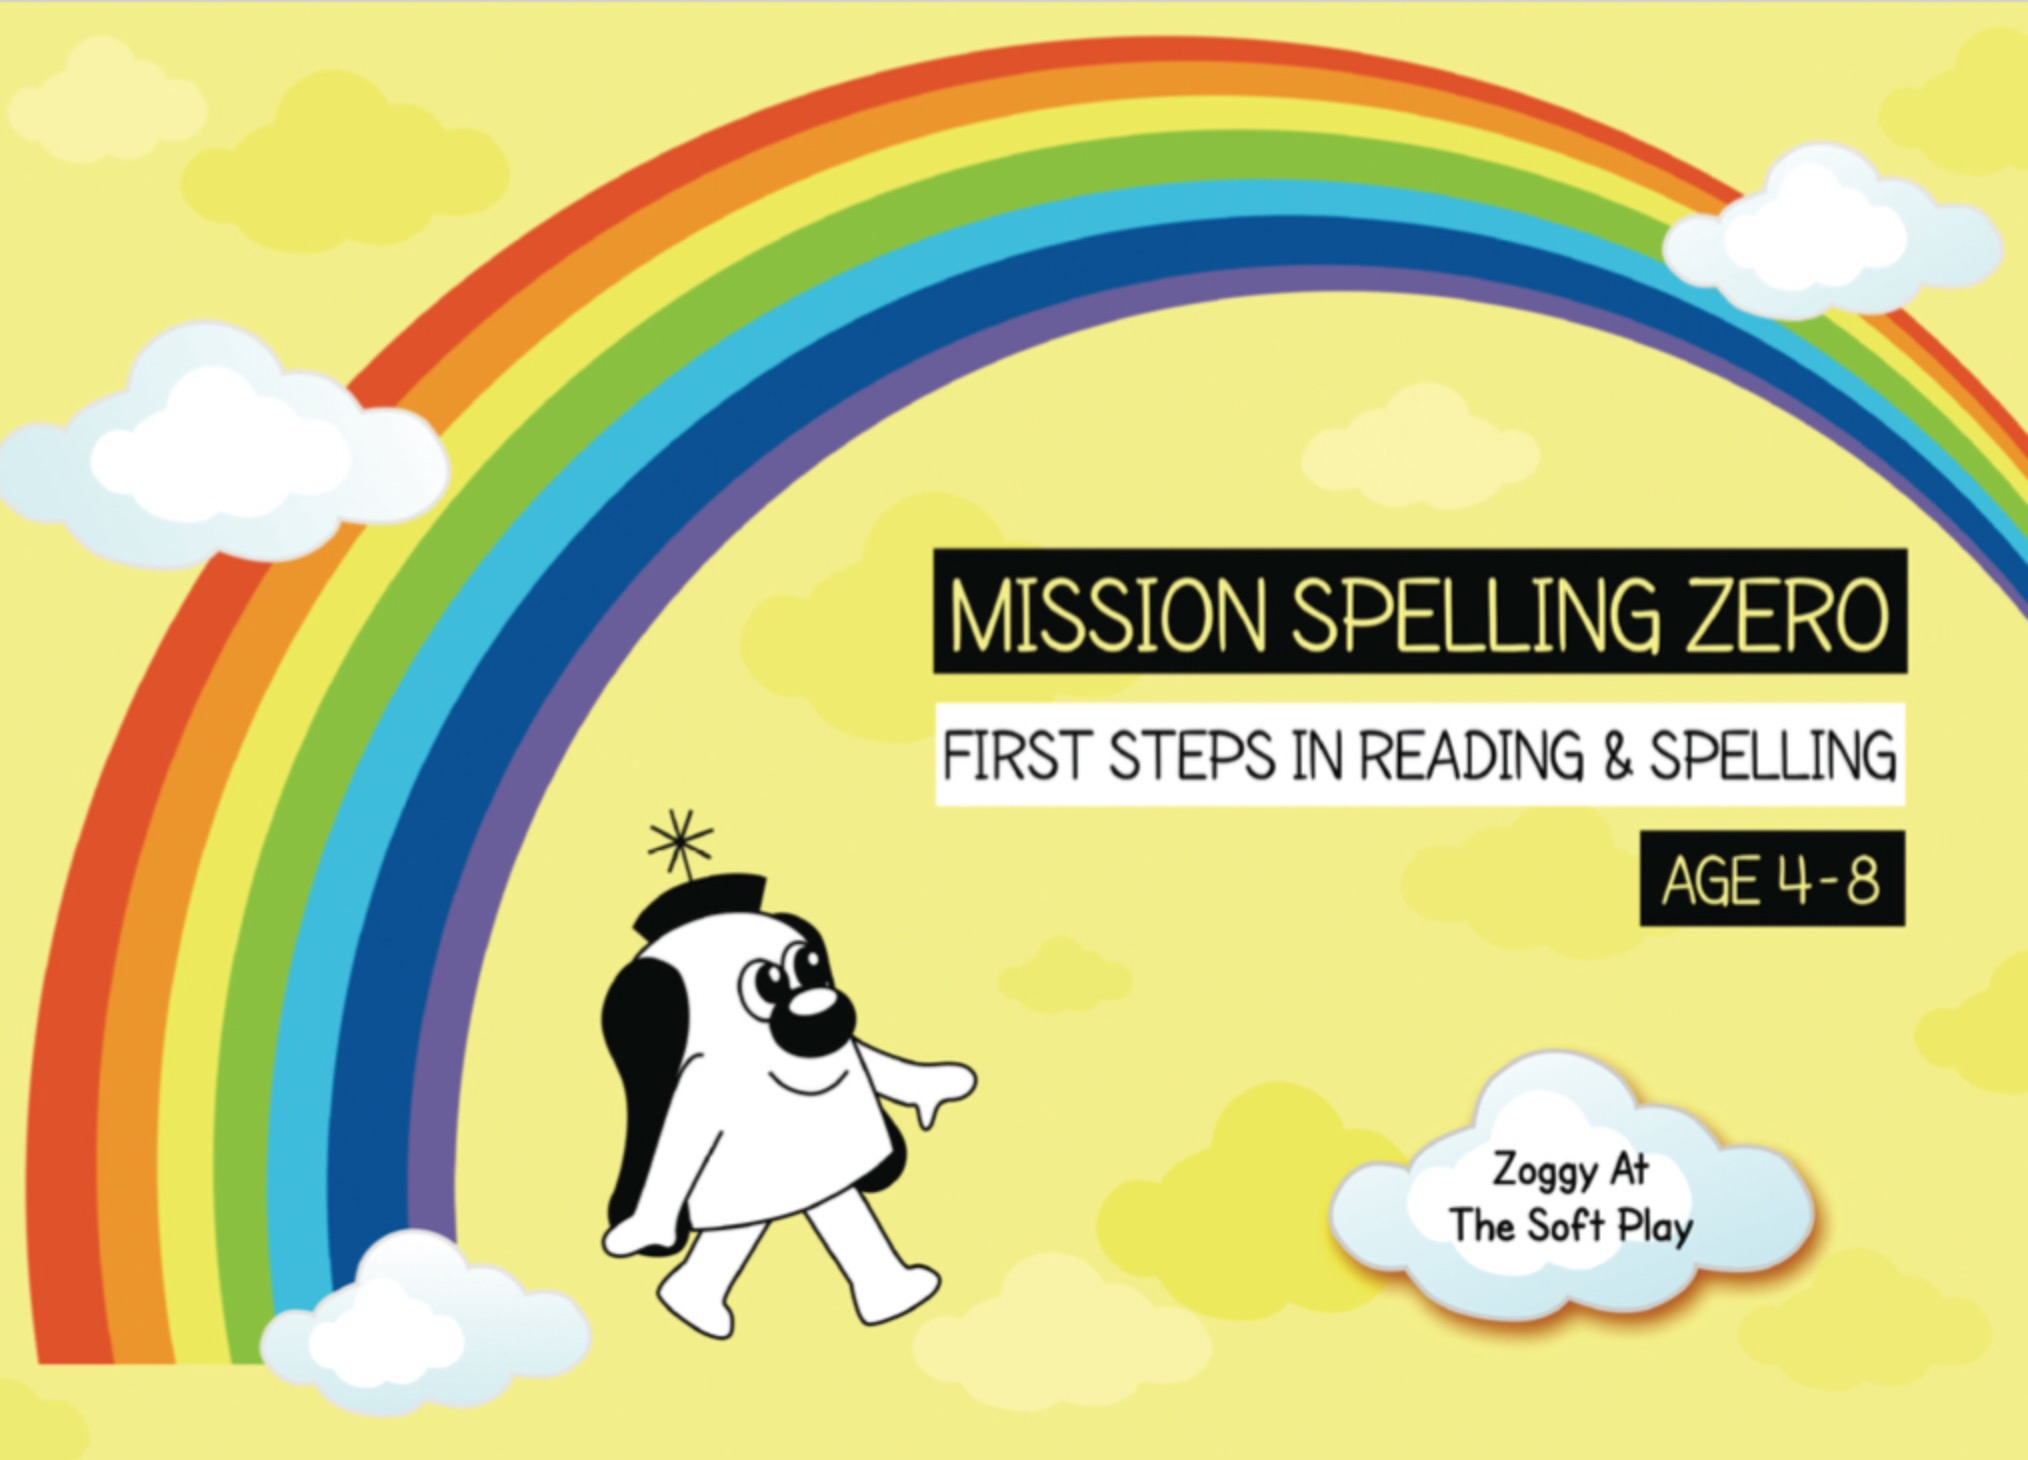 Vowel Digraphs Like OA, AI, AY, OI, OY: Zoggy At The Soft Play (Print Edition)